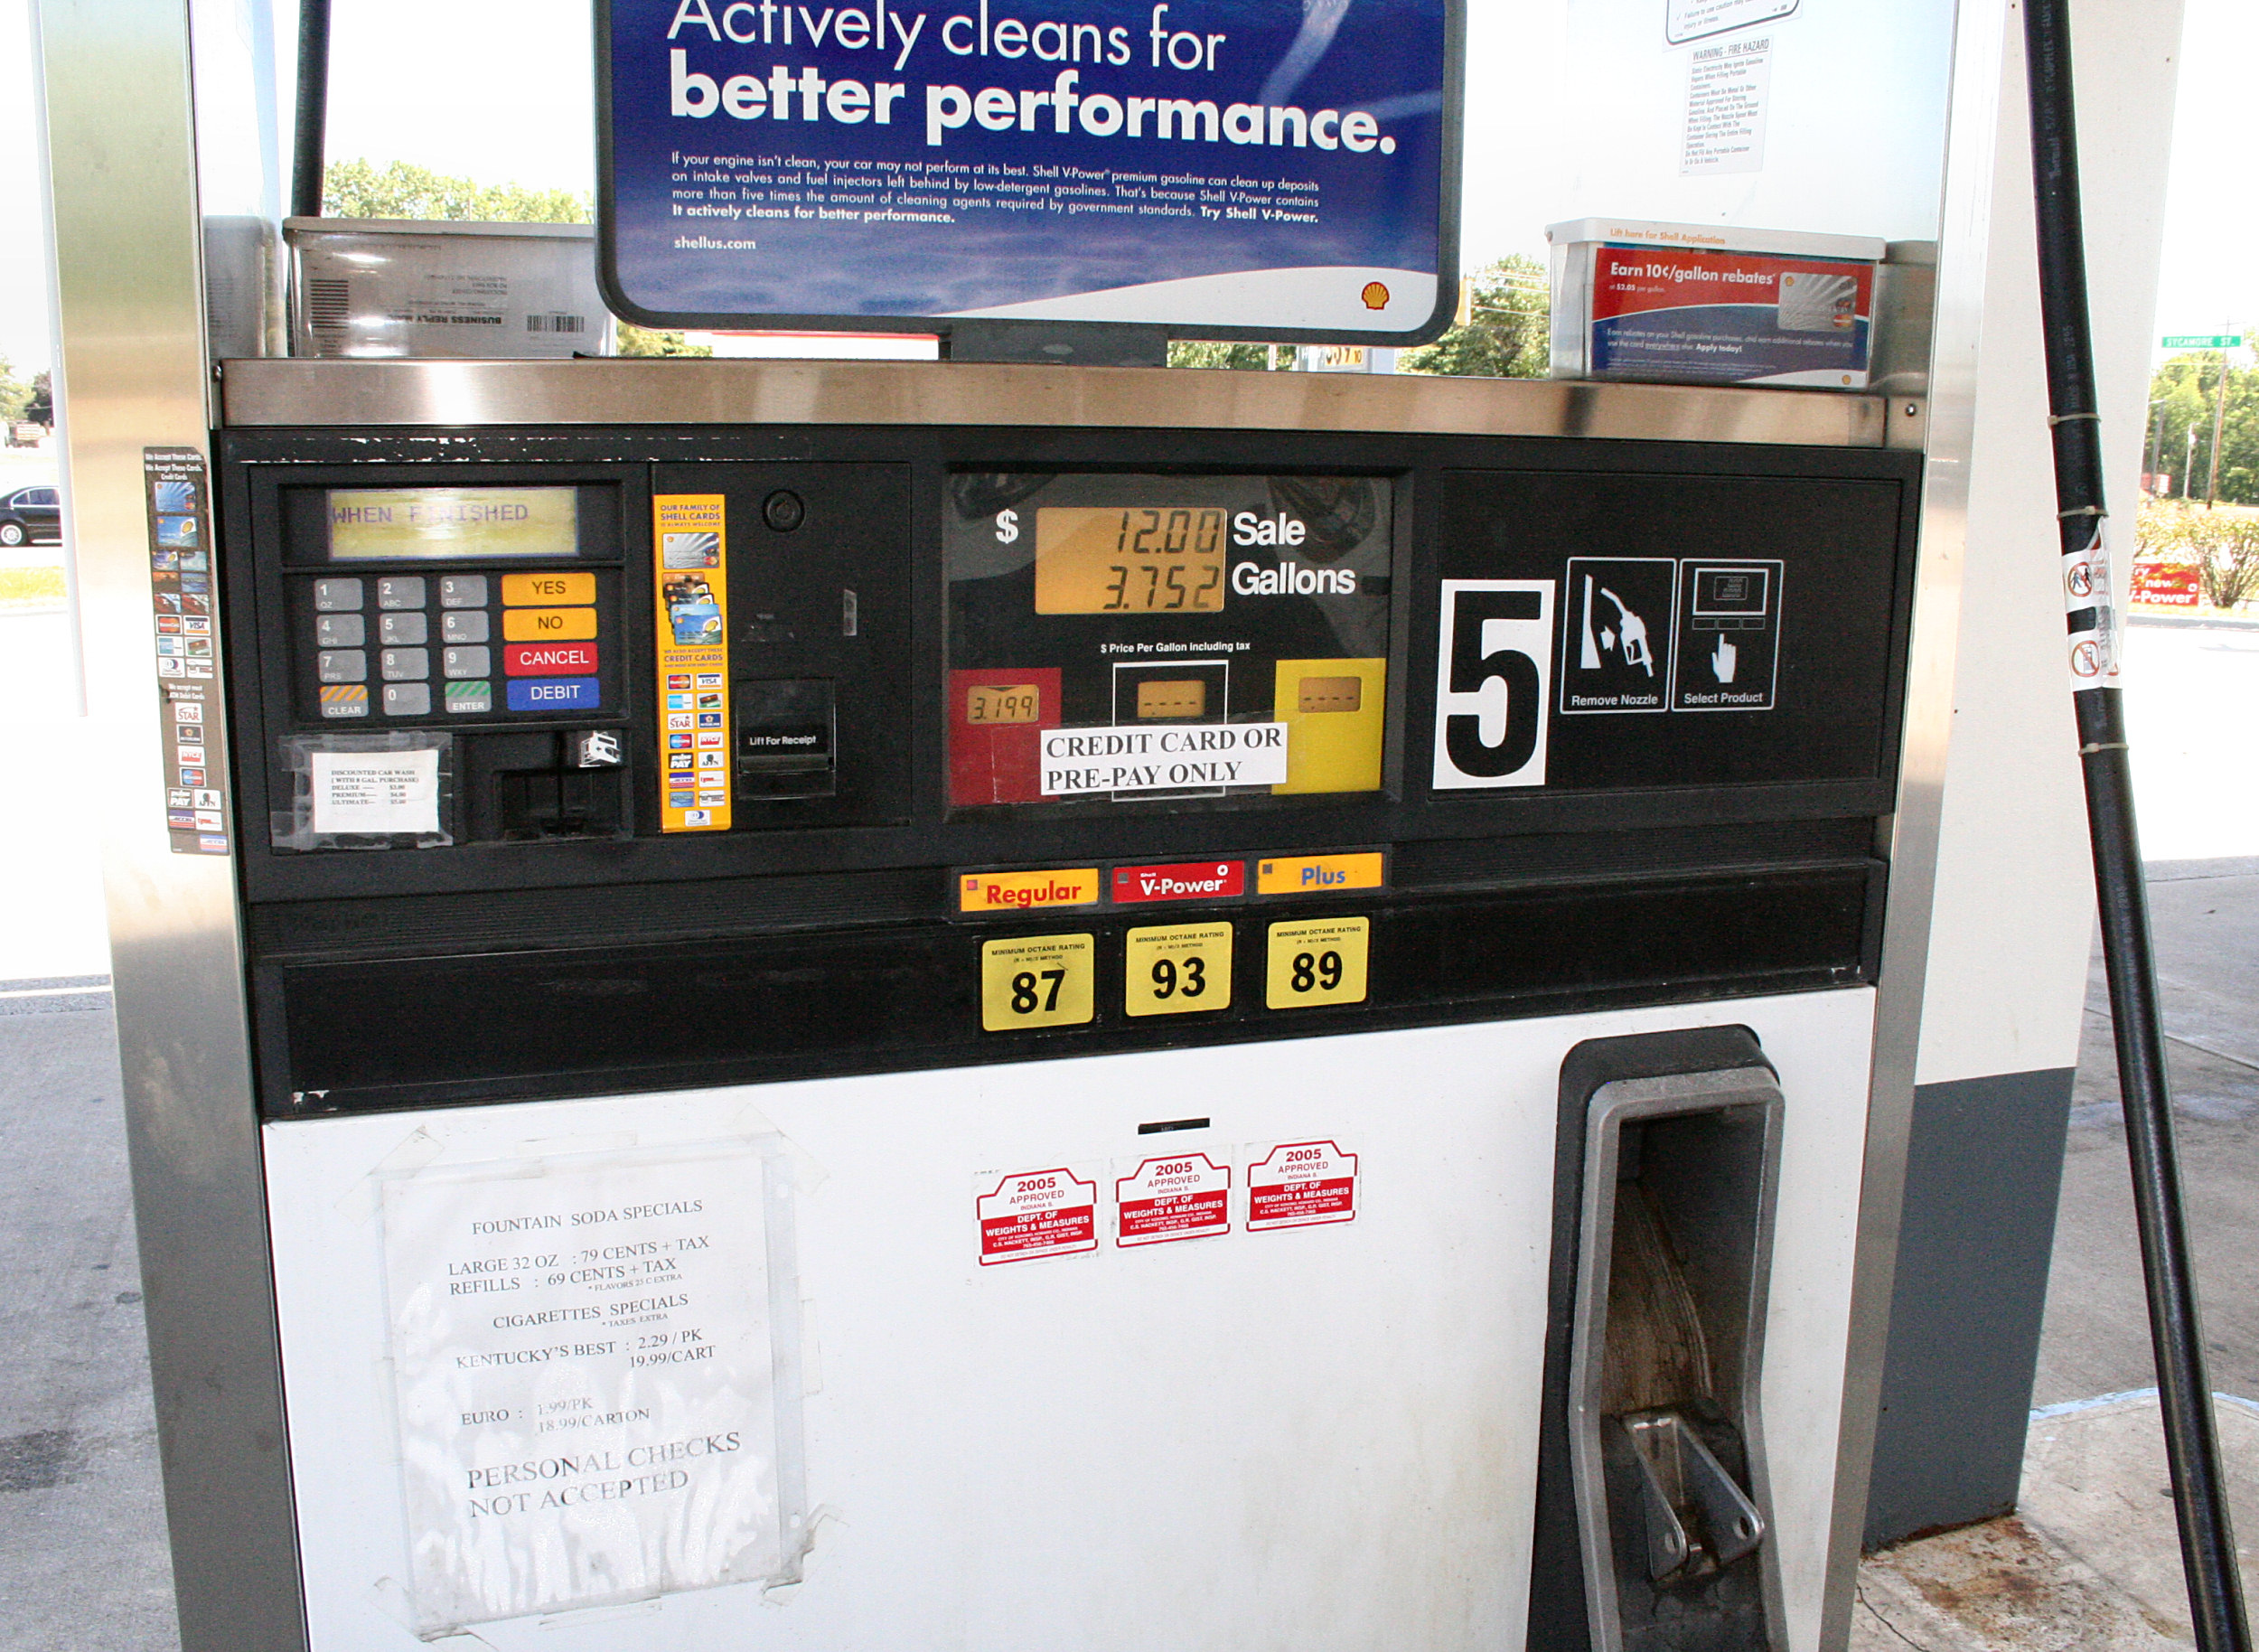 NJGOP Needs to Make Gas Tax a Major 2015 Issue